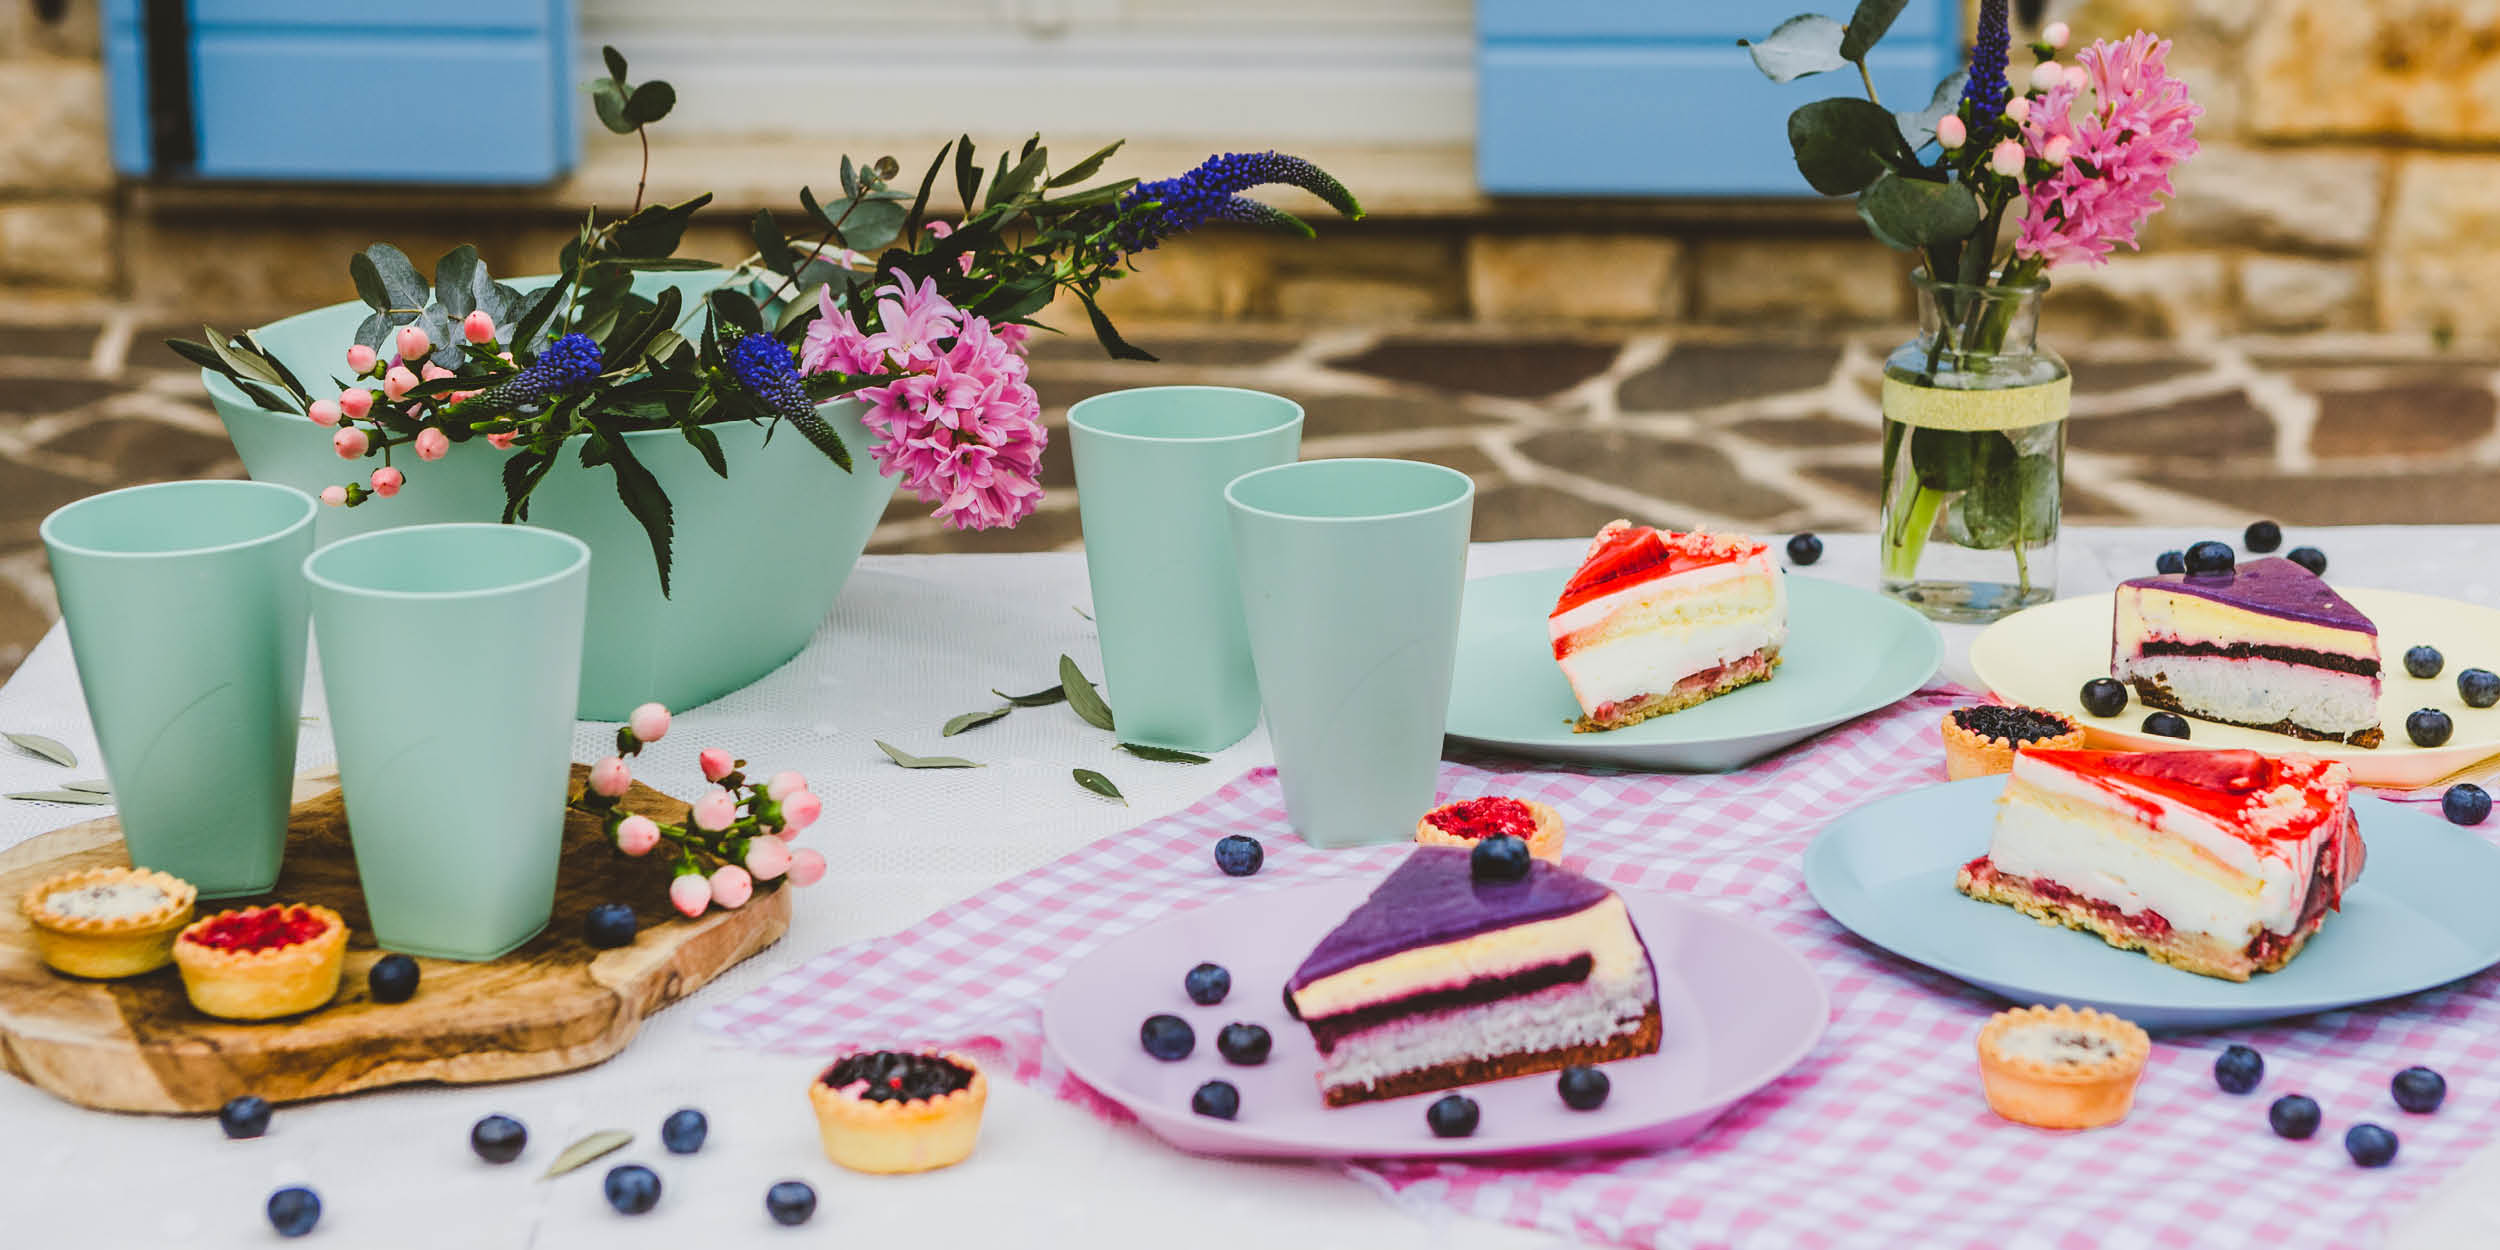 Introduce tableware from sustainable material, such as the popular Viva 2 line